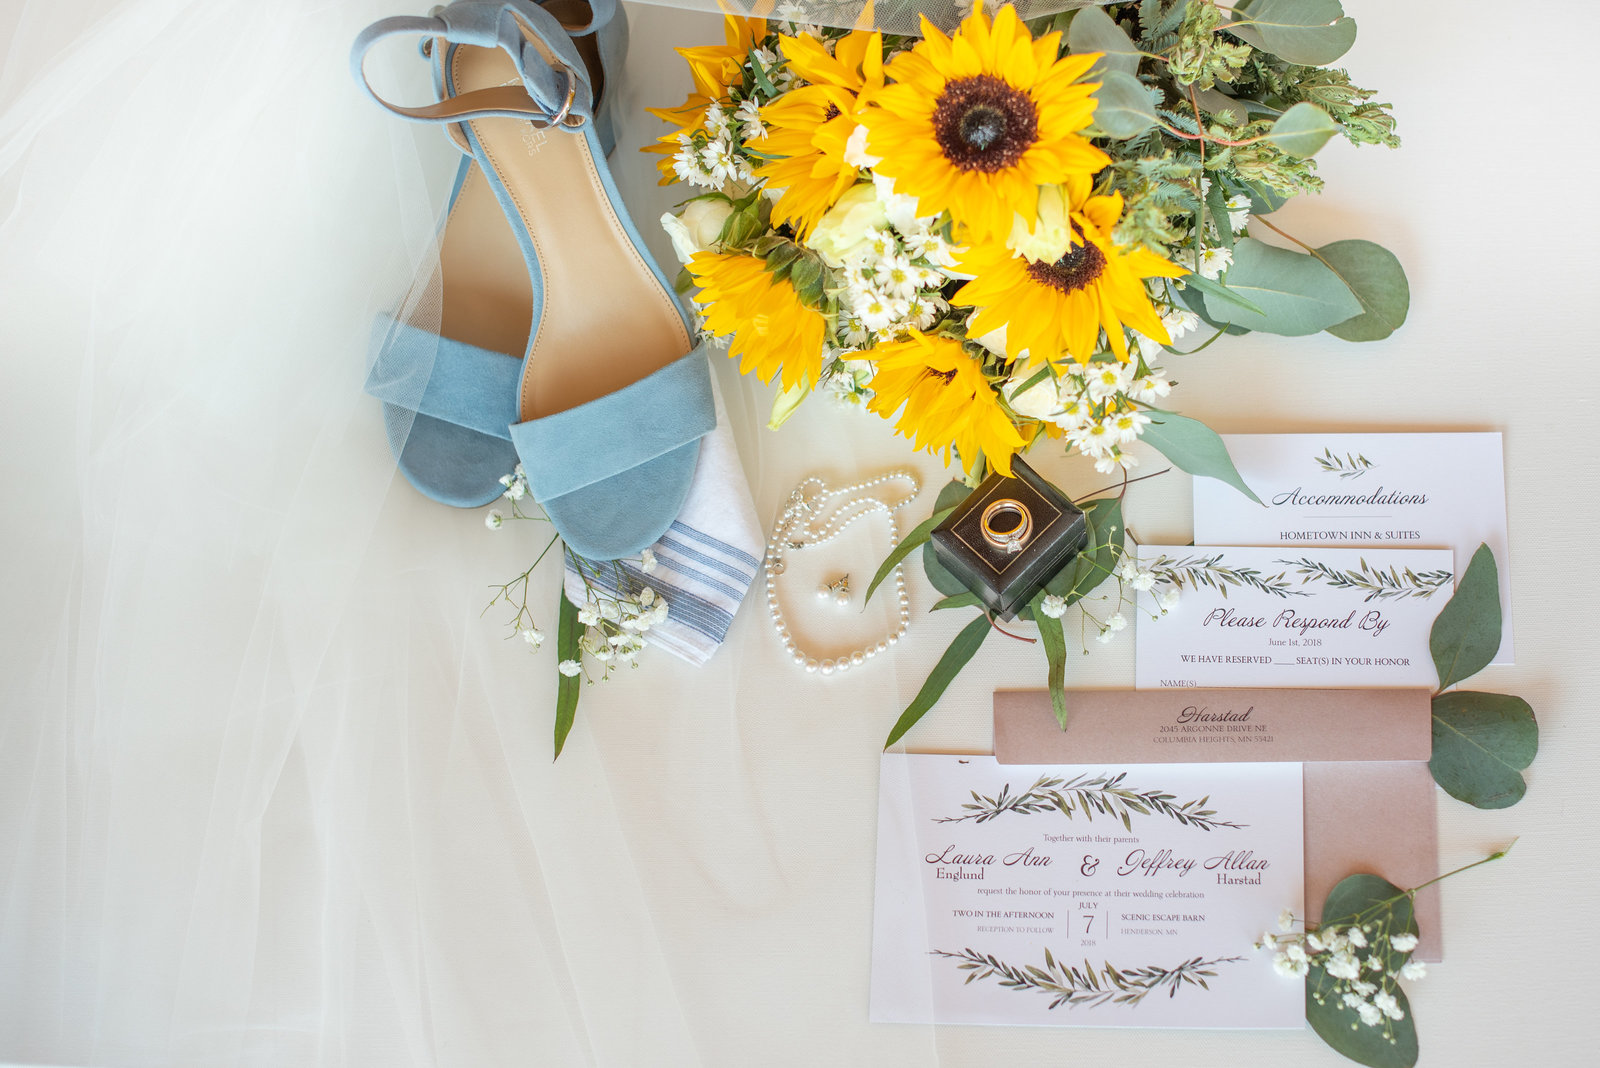 Wedding Details at Scenic Escape Barn By Kara Olson Photography